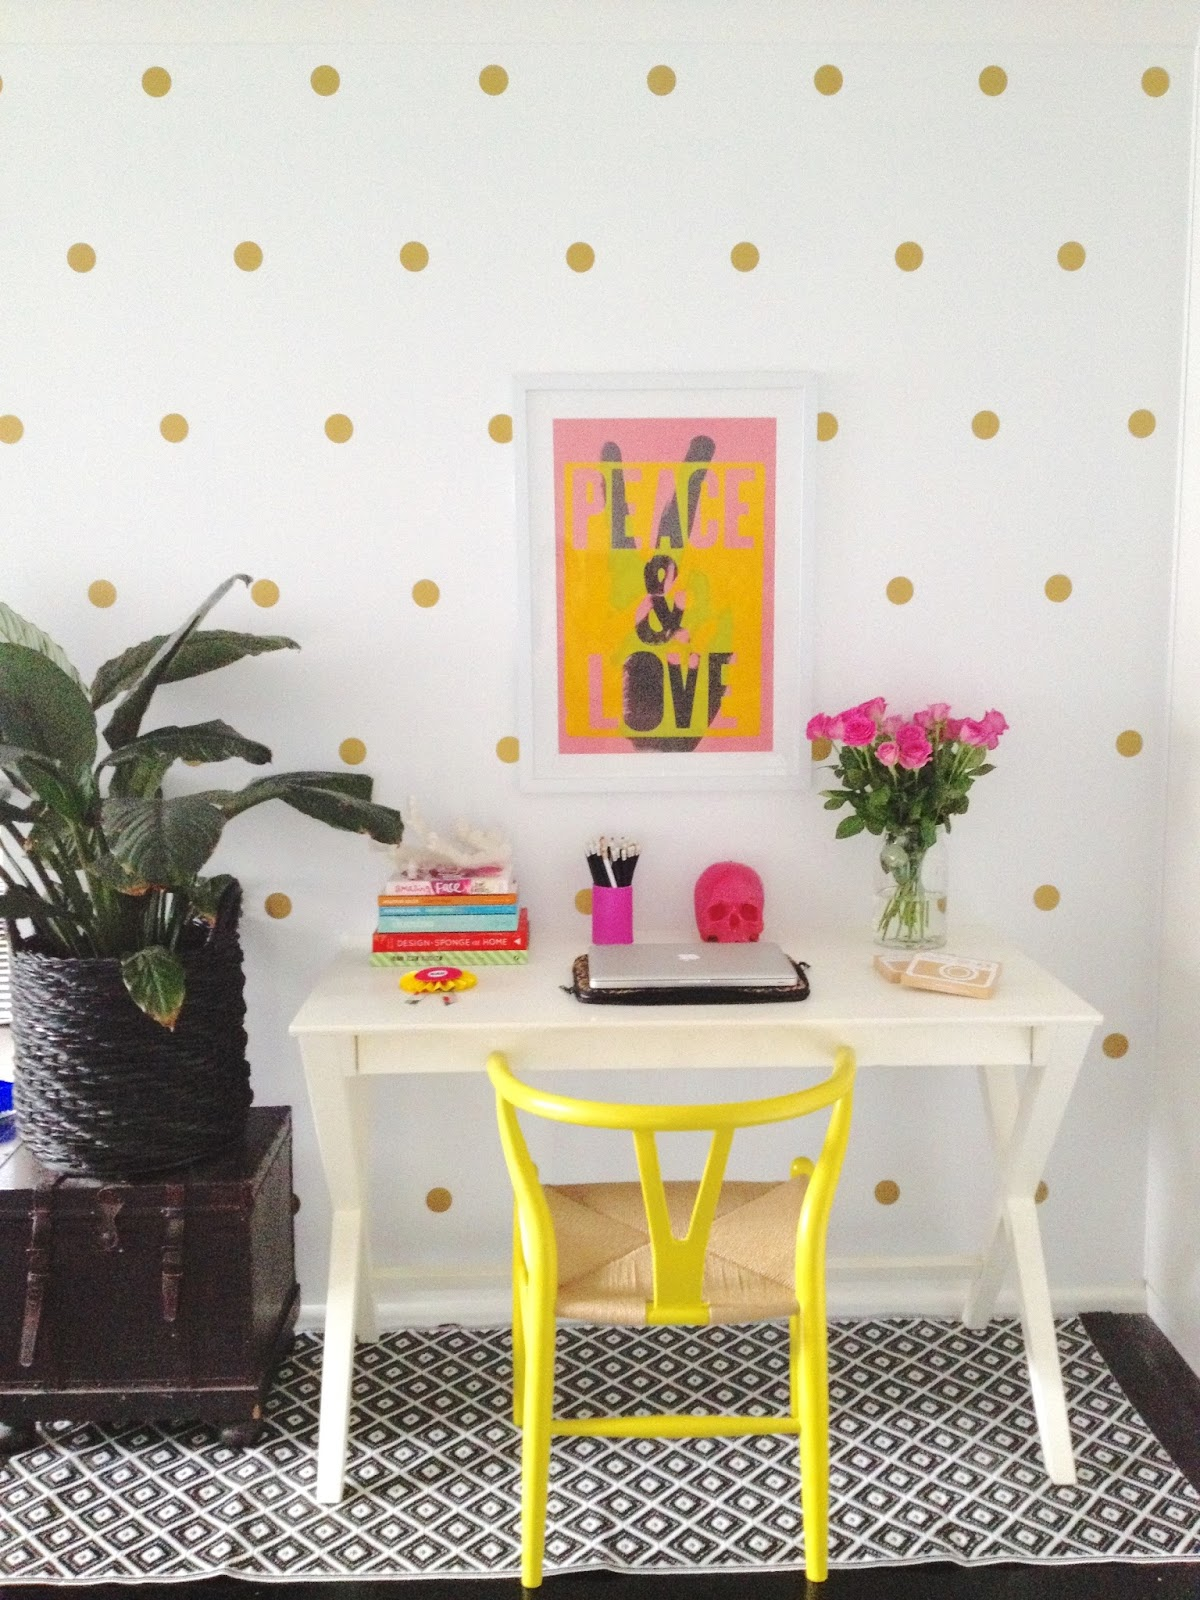 Honey And Fizz Polka Dot Wall Stickers - How to put a decal on my wall